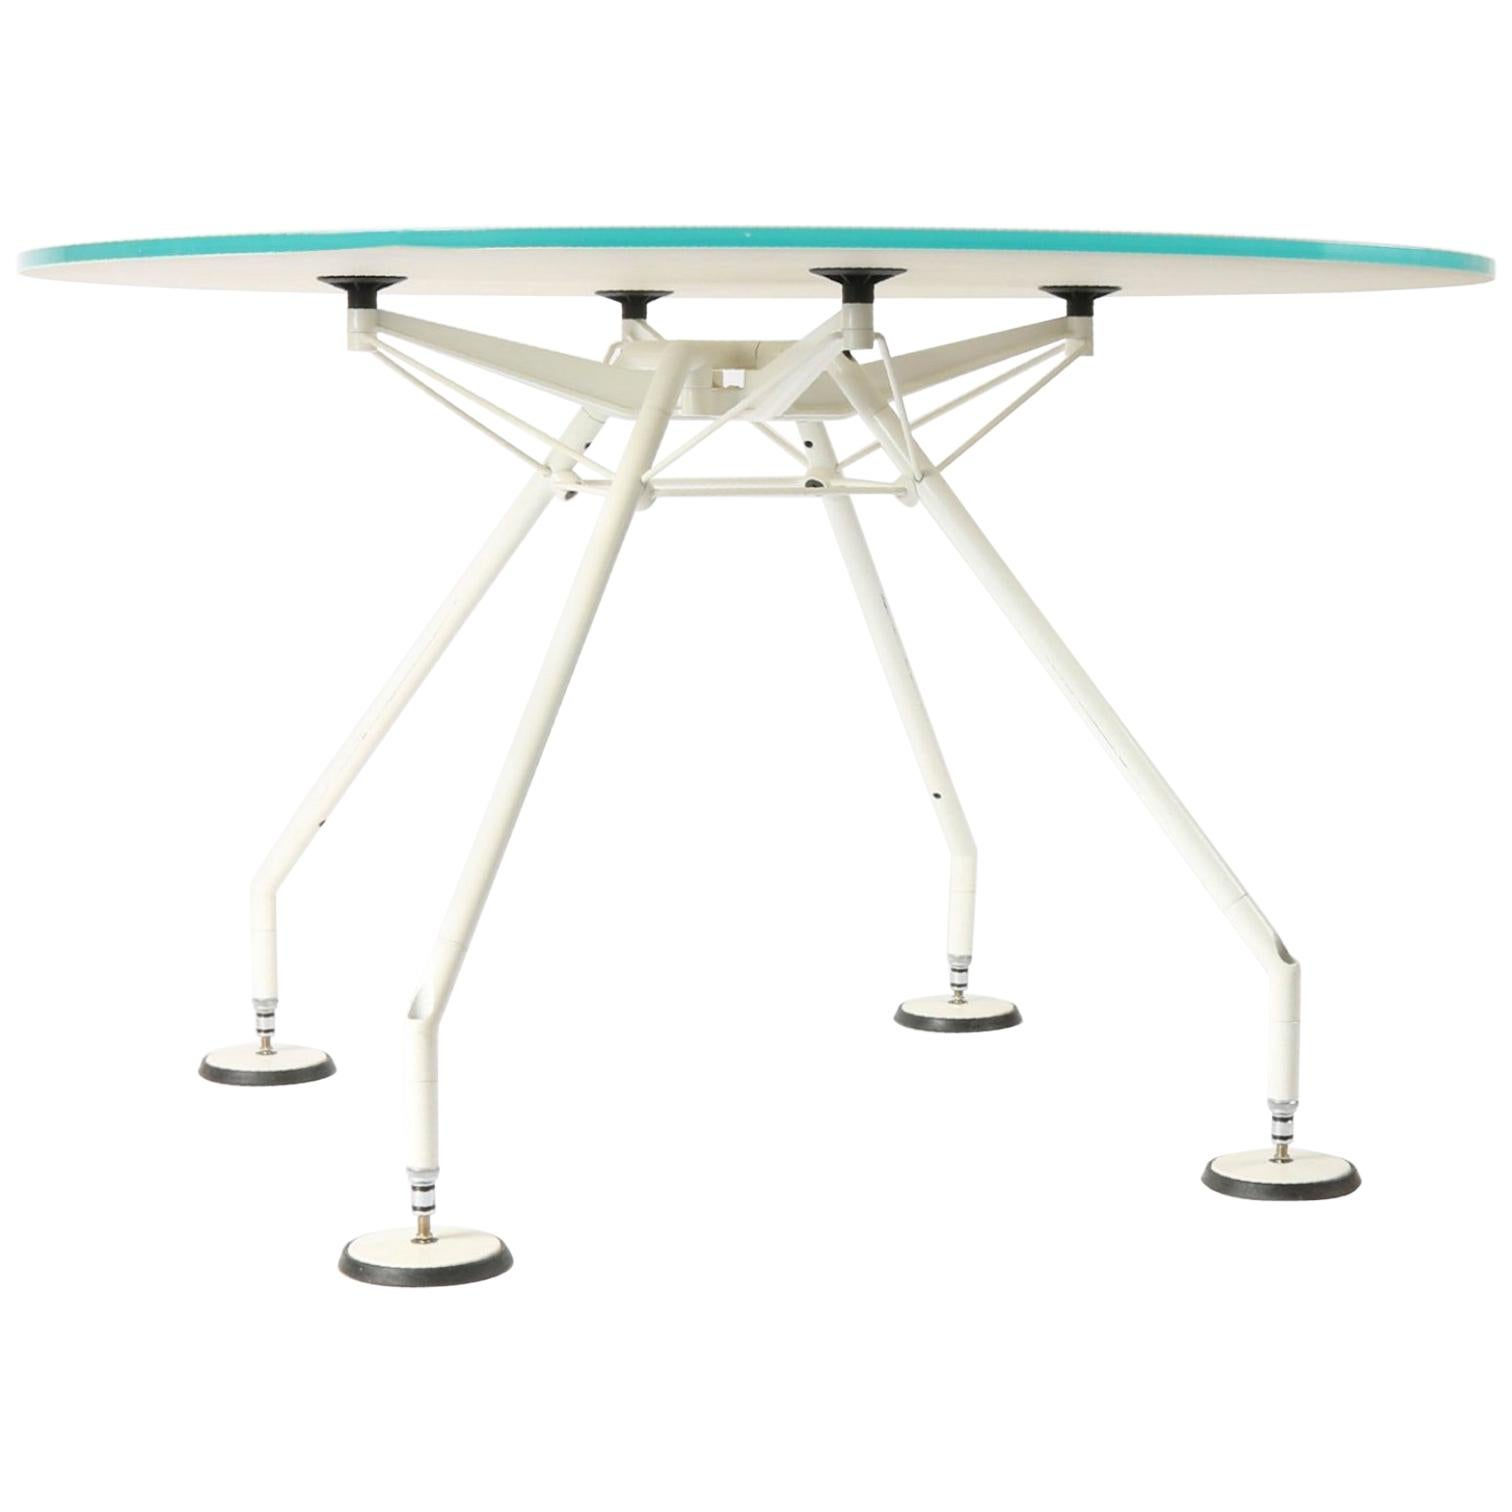 Great Nomos Table by Norman Foster Produced by Tecno, 1980s